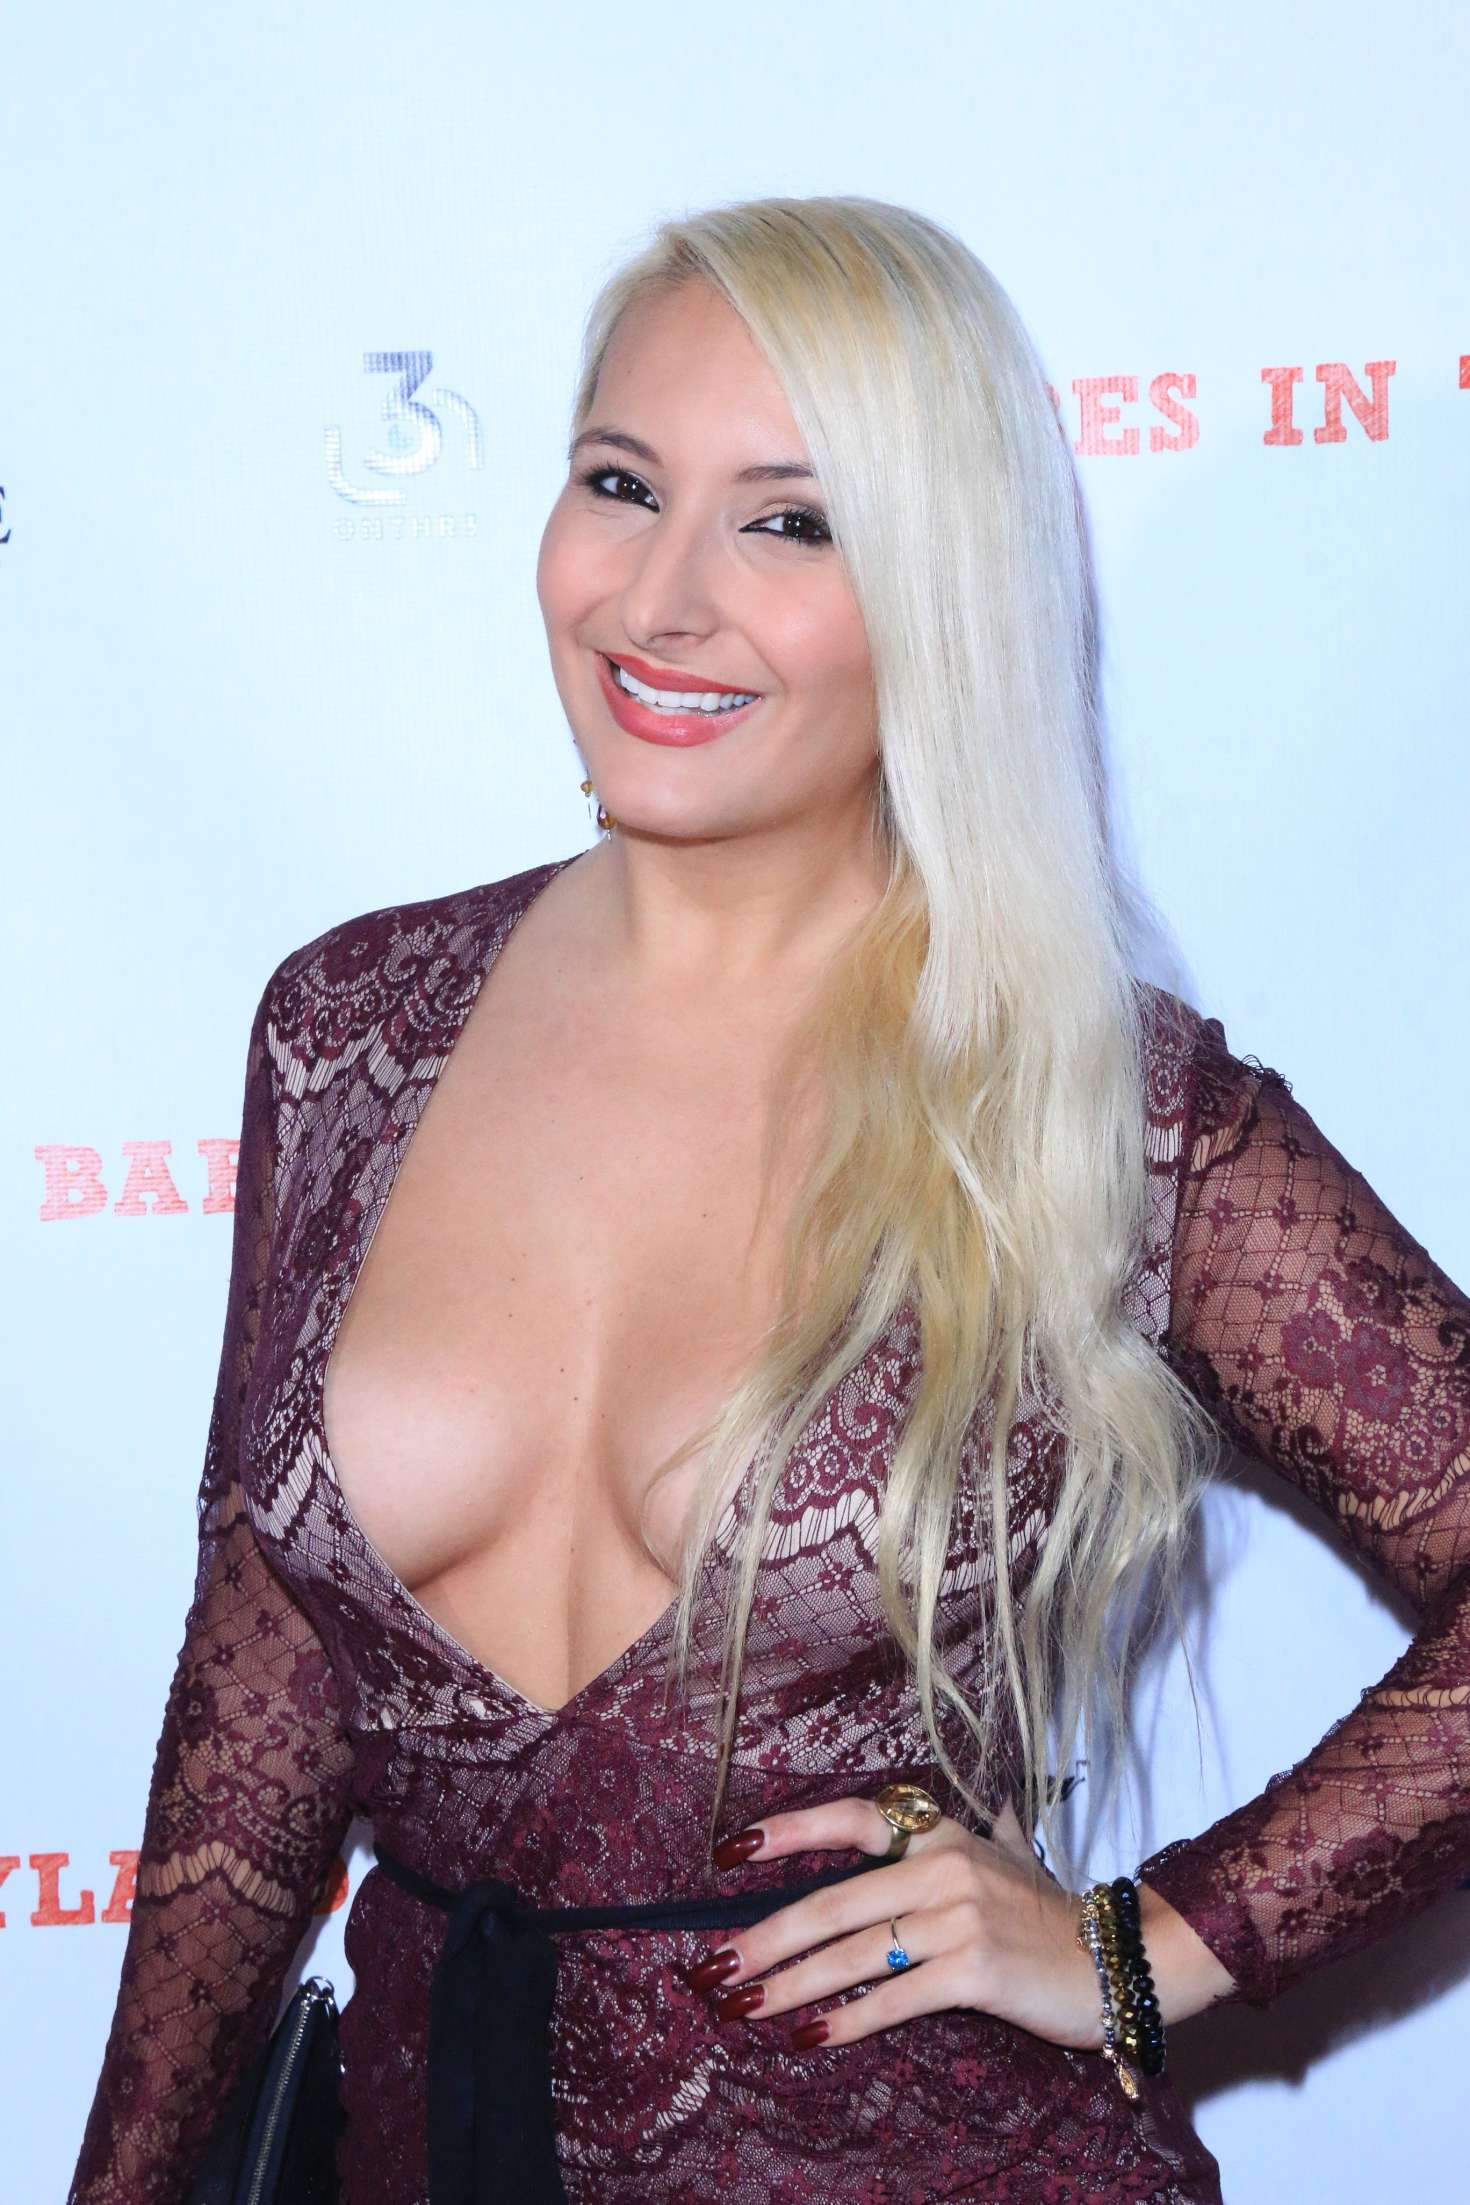 Casey Konkel - 9th Annual Babes in Toyland Charity Toy Drive in Hollywood